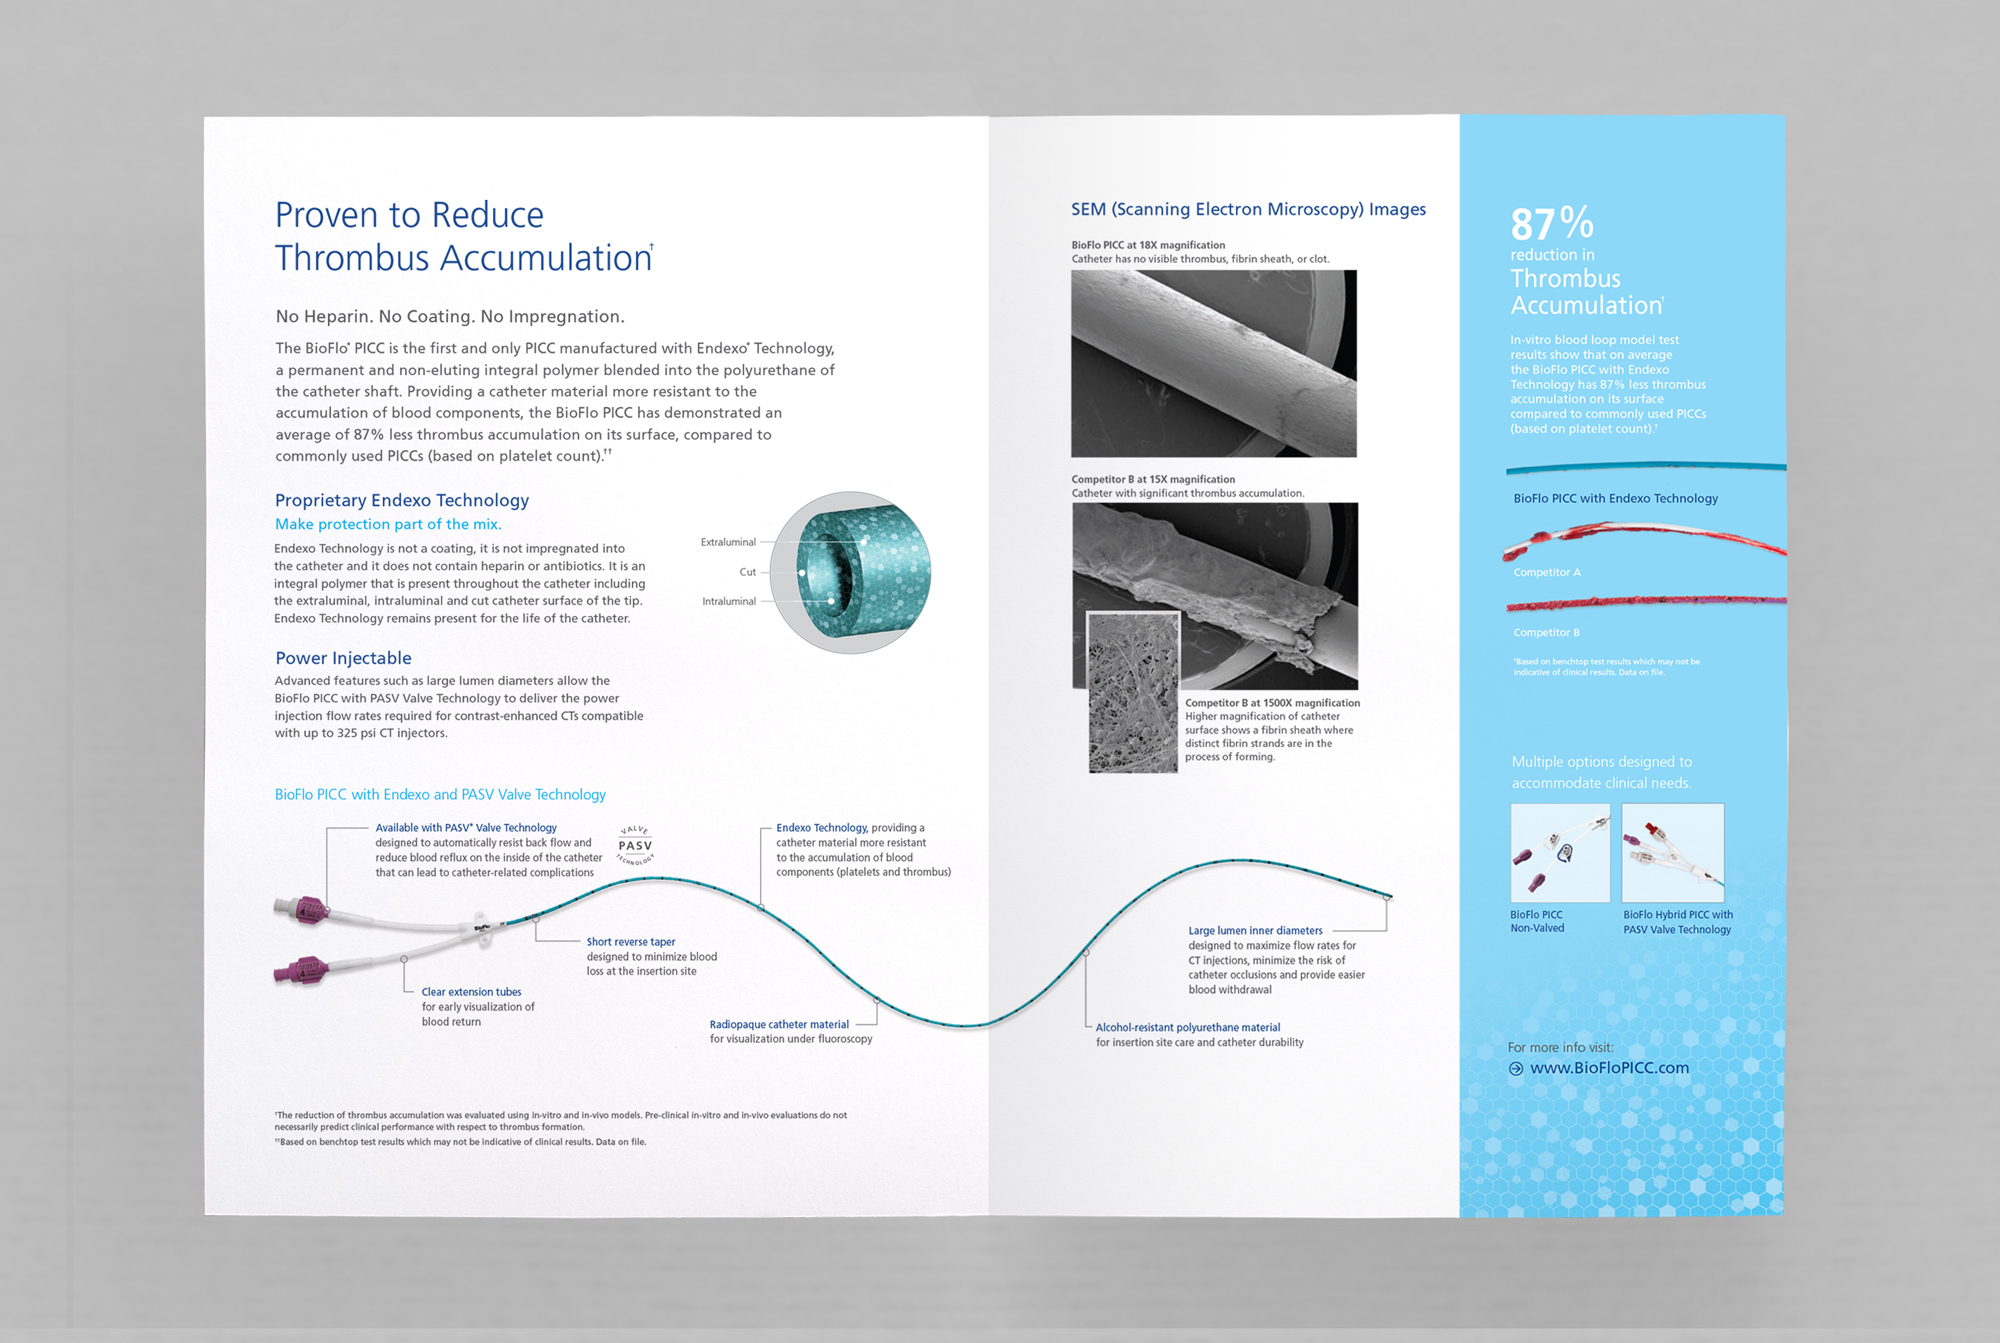 AngioDynamics Marketing Collateral    View the entire case study ➾